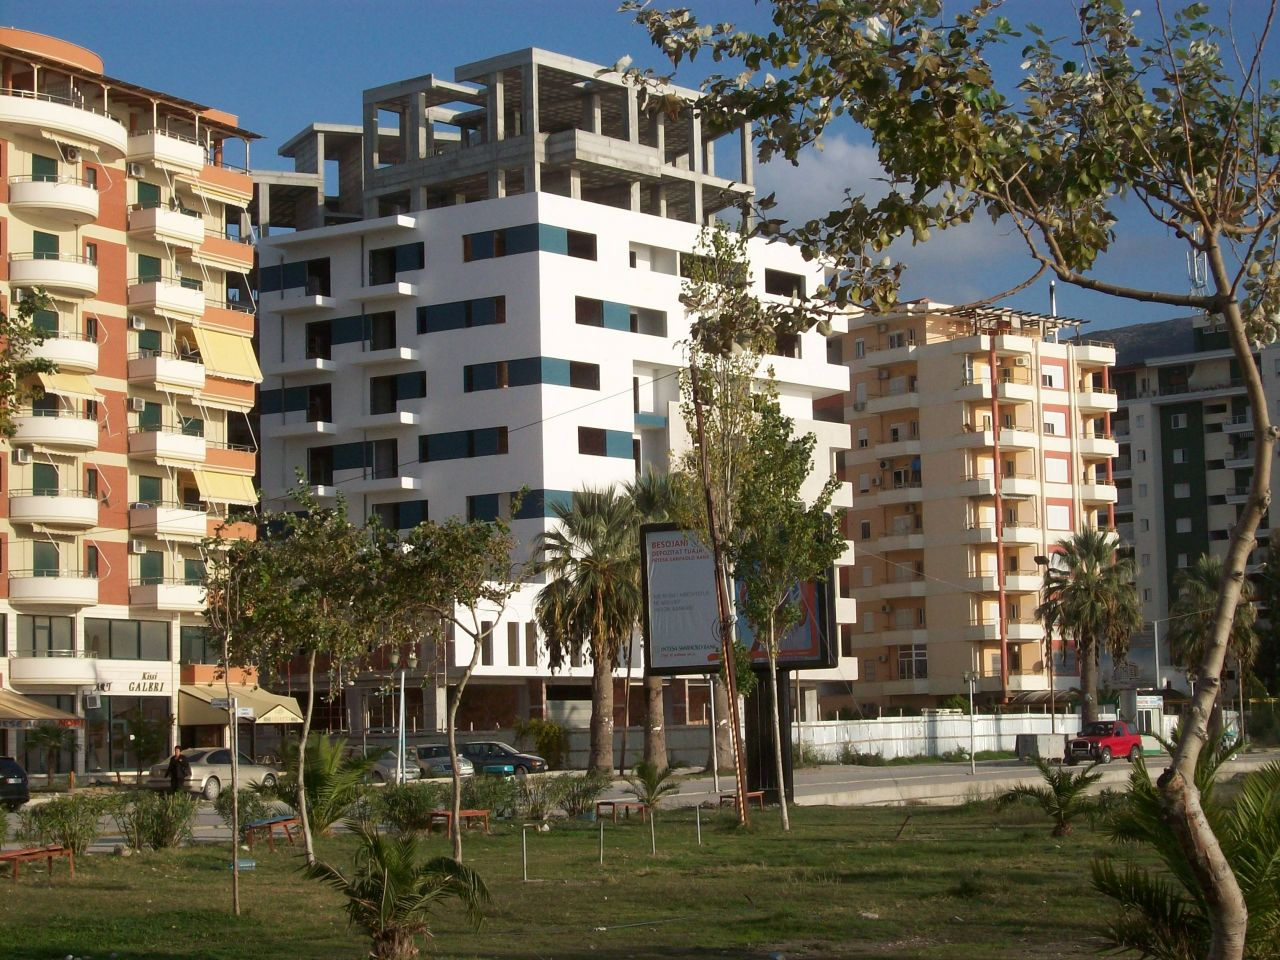 Apartments for sale in Vlora, close to the sea. Beautiful nature and great conditions.